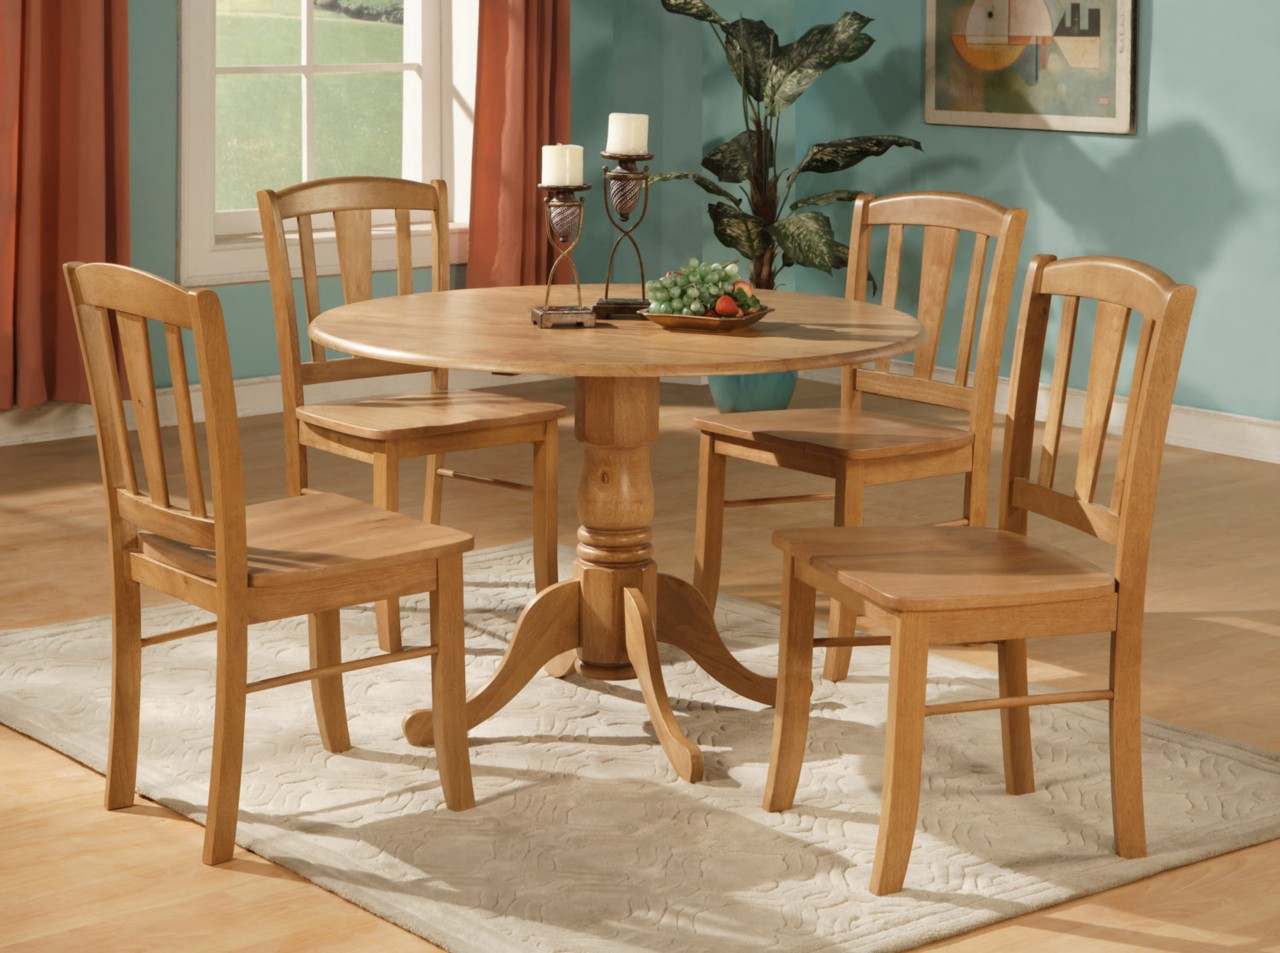 kitchen table with 4 chairs outdoor kit 5pc round dinette dining set and ebay